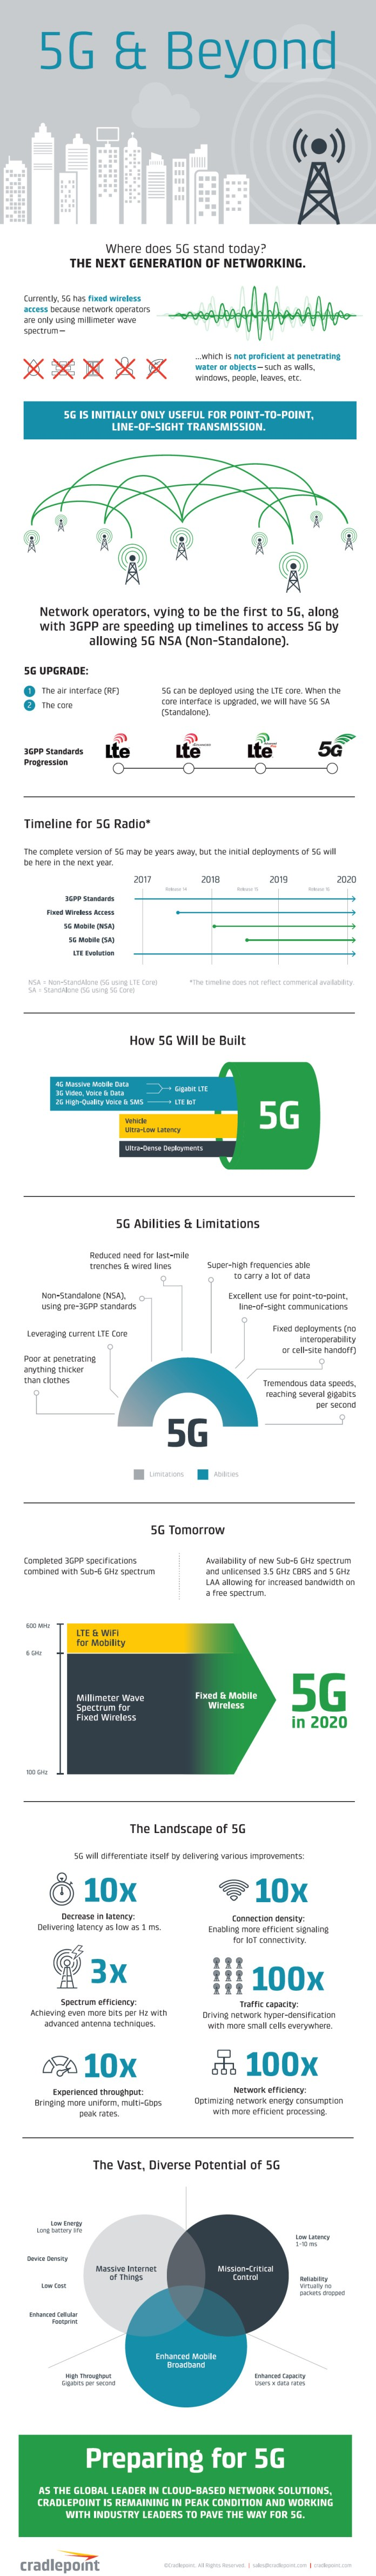 5G: The Next Generation of Mobile Connectivity